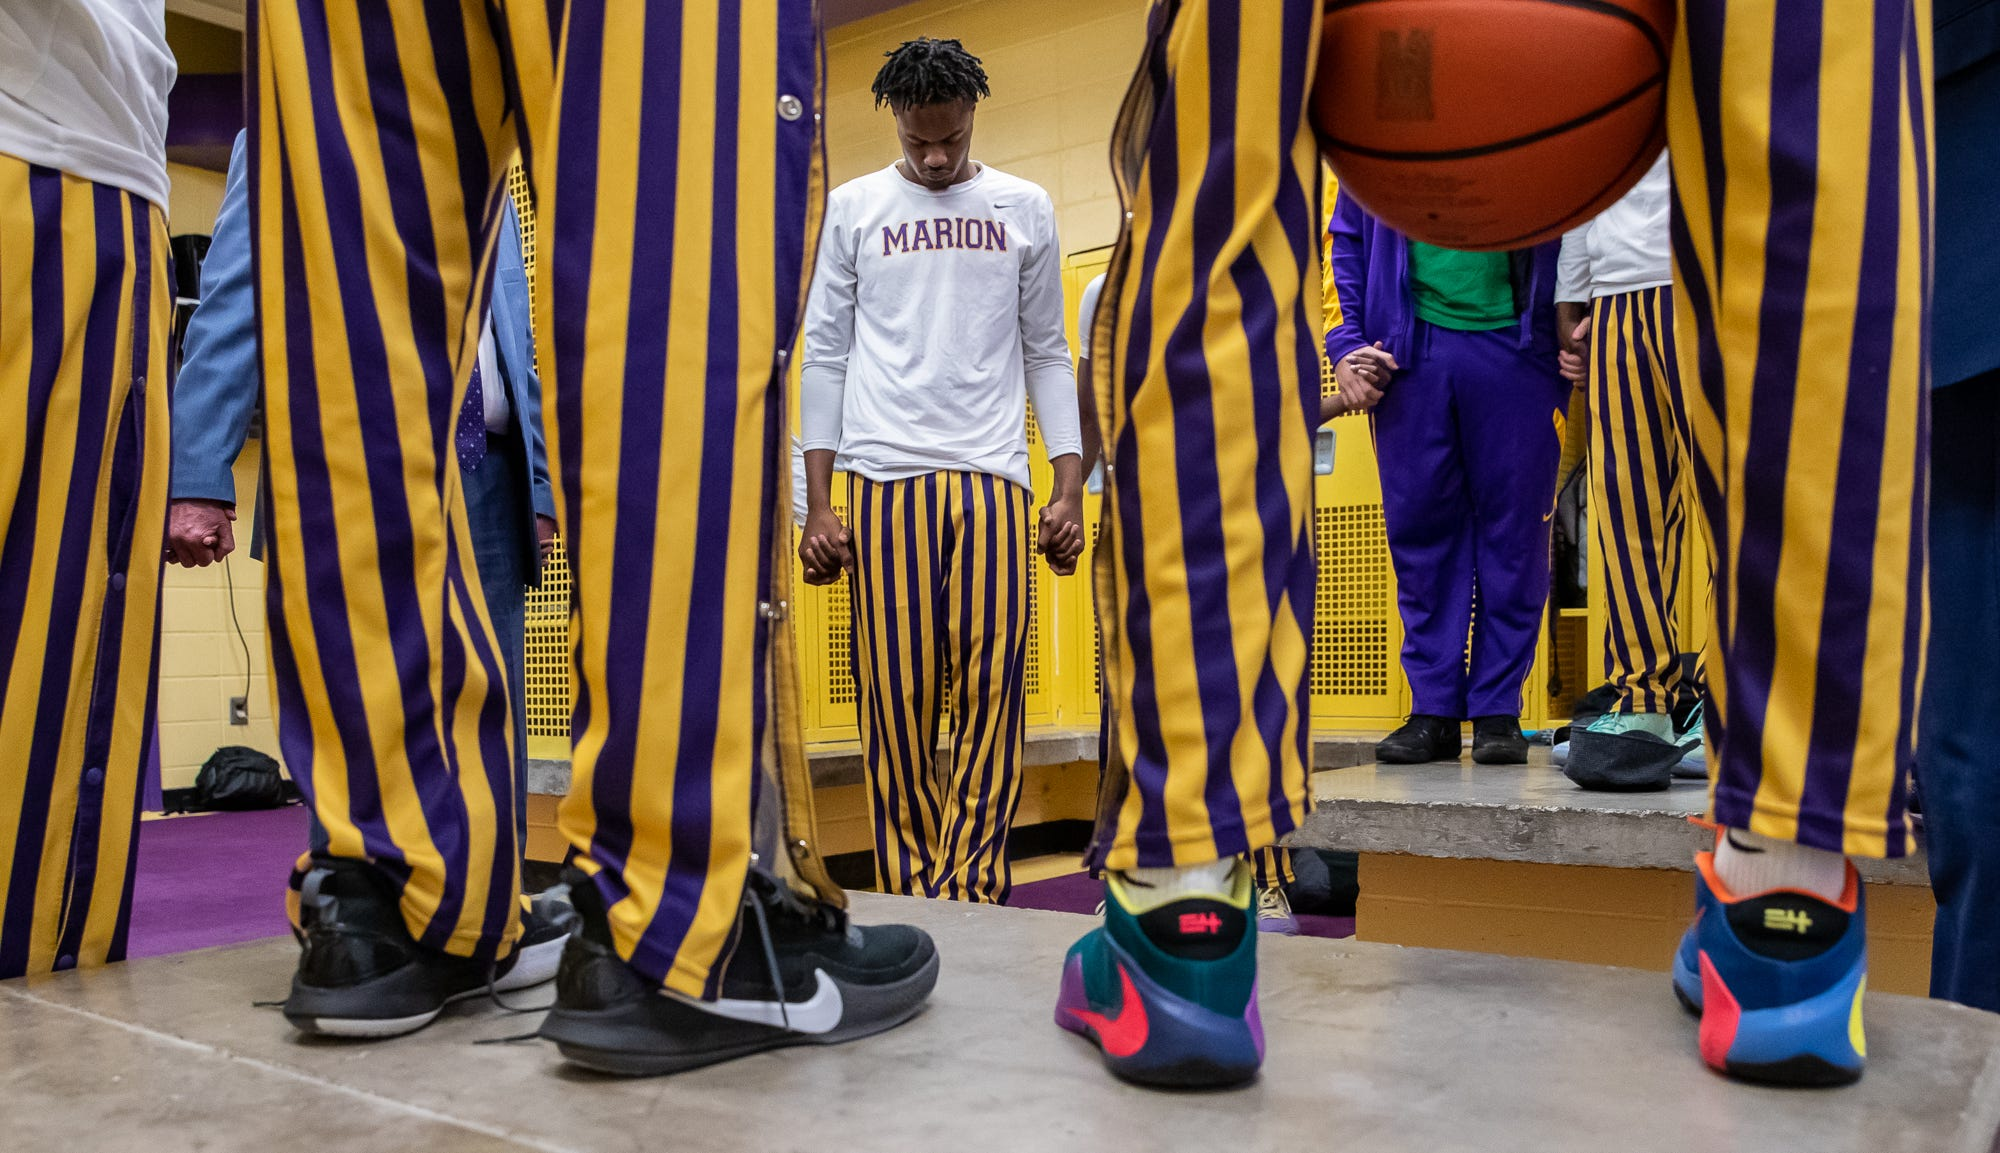 Marion Giants' Brendon Martin says a prayer alongside his teammates and coach inside Marion High School's Bill Green Arena before the teams varsity basketball game against the Fort Wayne Snyder Panthers on Friday, Feb. 28, 2020.